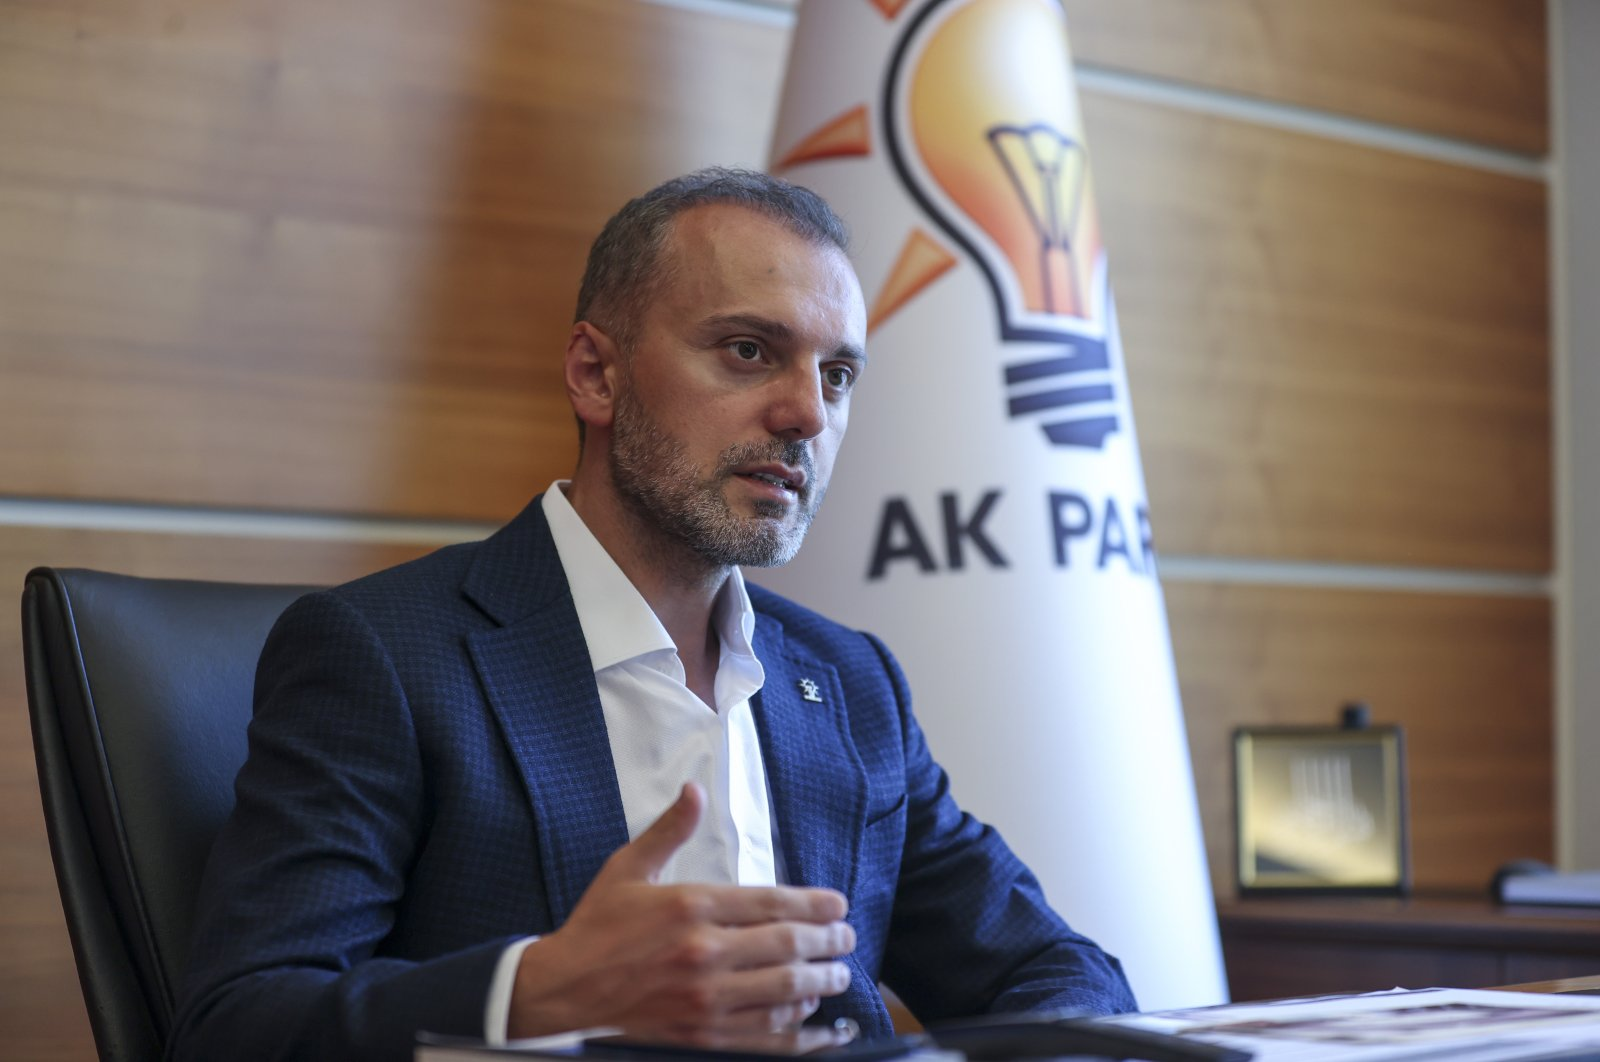 AK Party deputy chairperson responsible for party organizations Erkan Kandemir speaks in an interview, Aug. 2, 2021. (AA Photo)